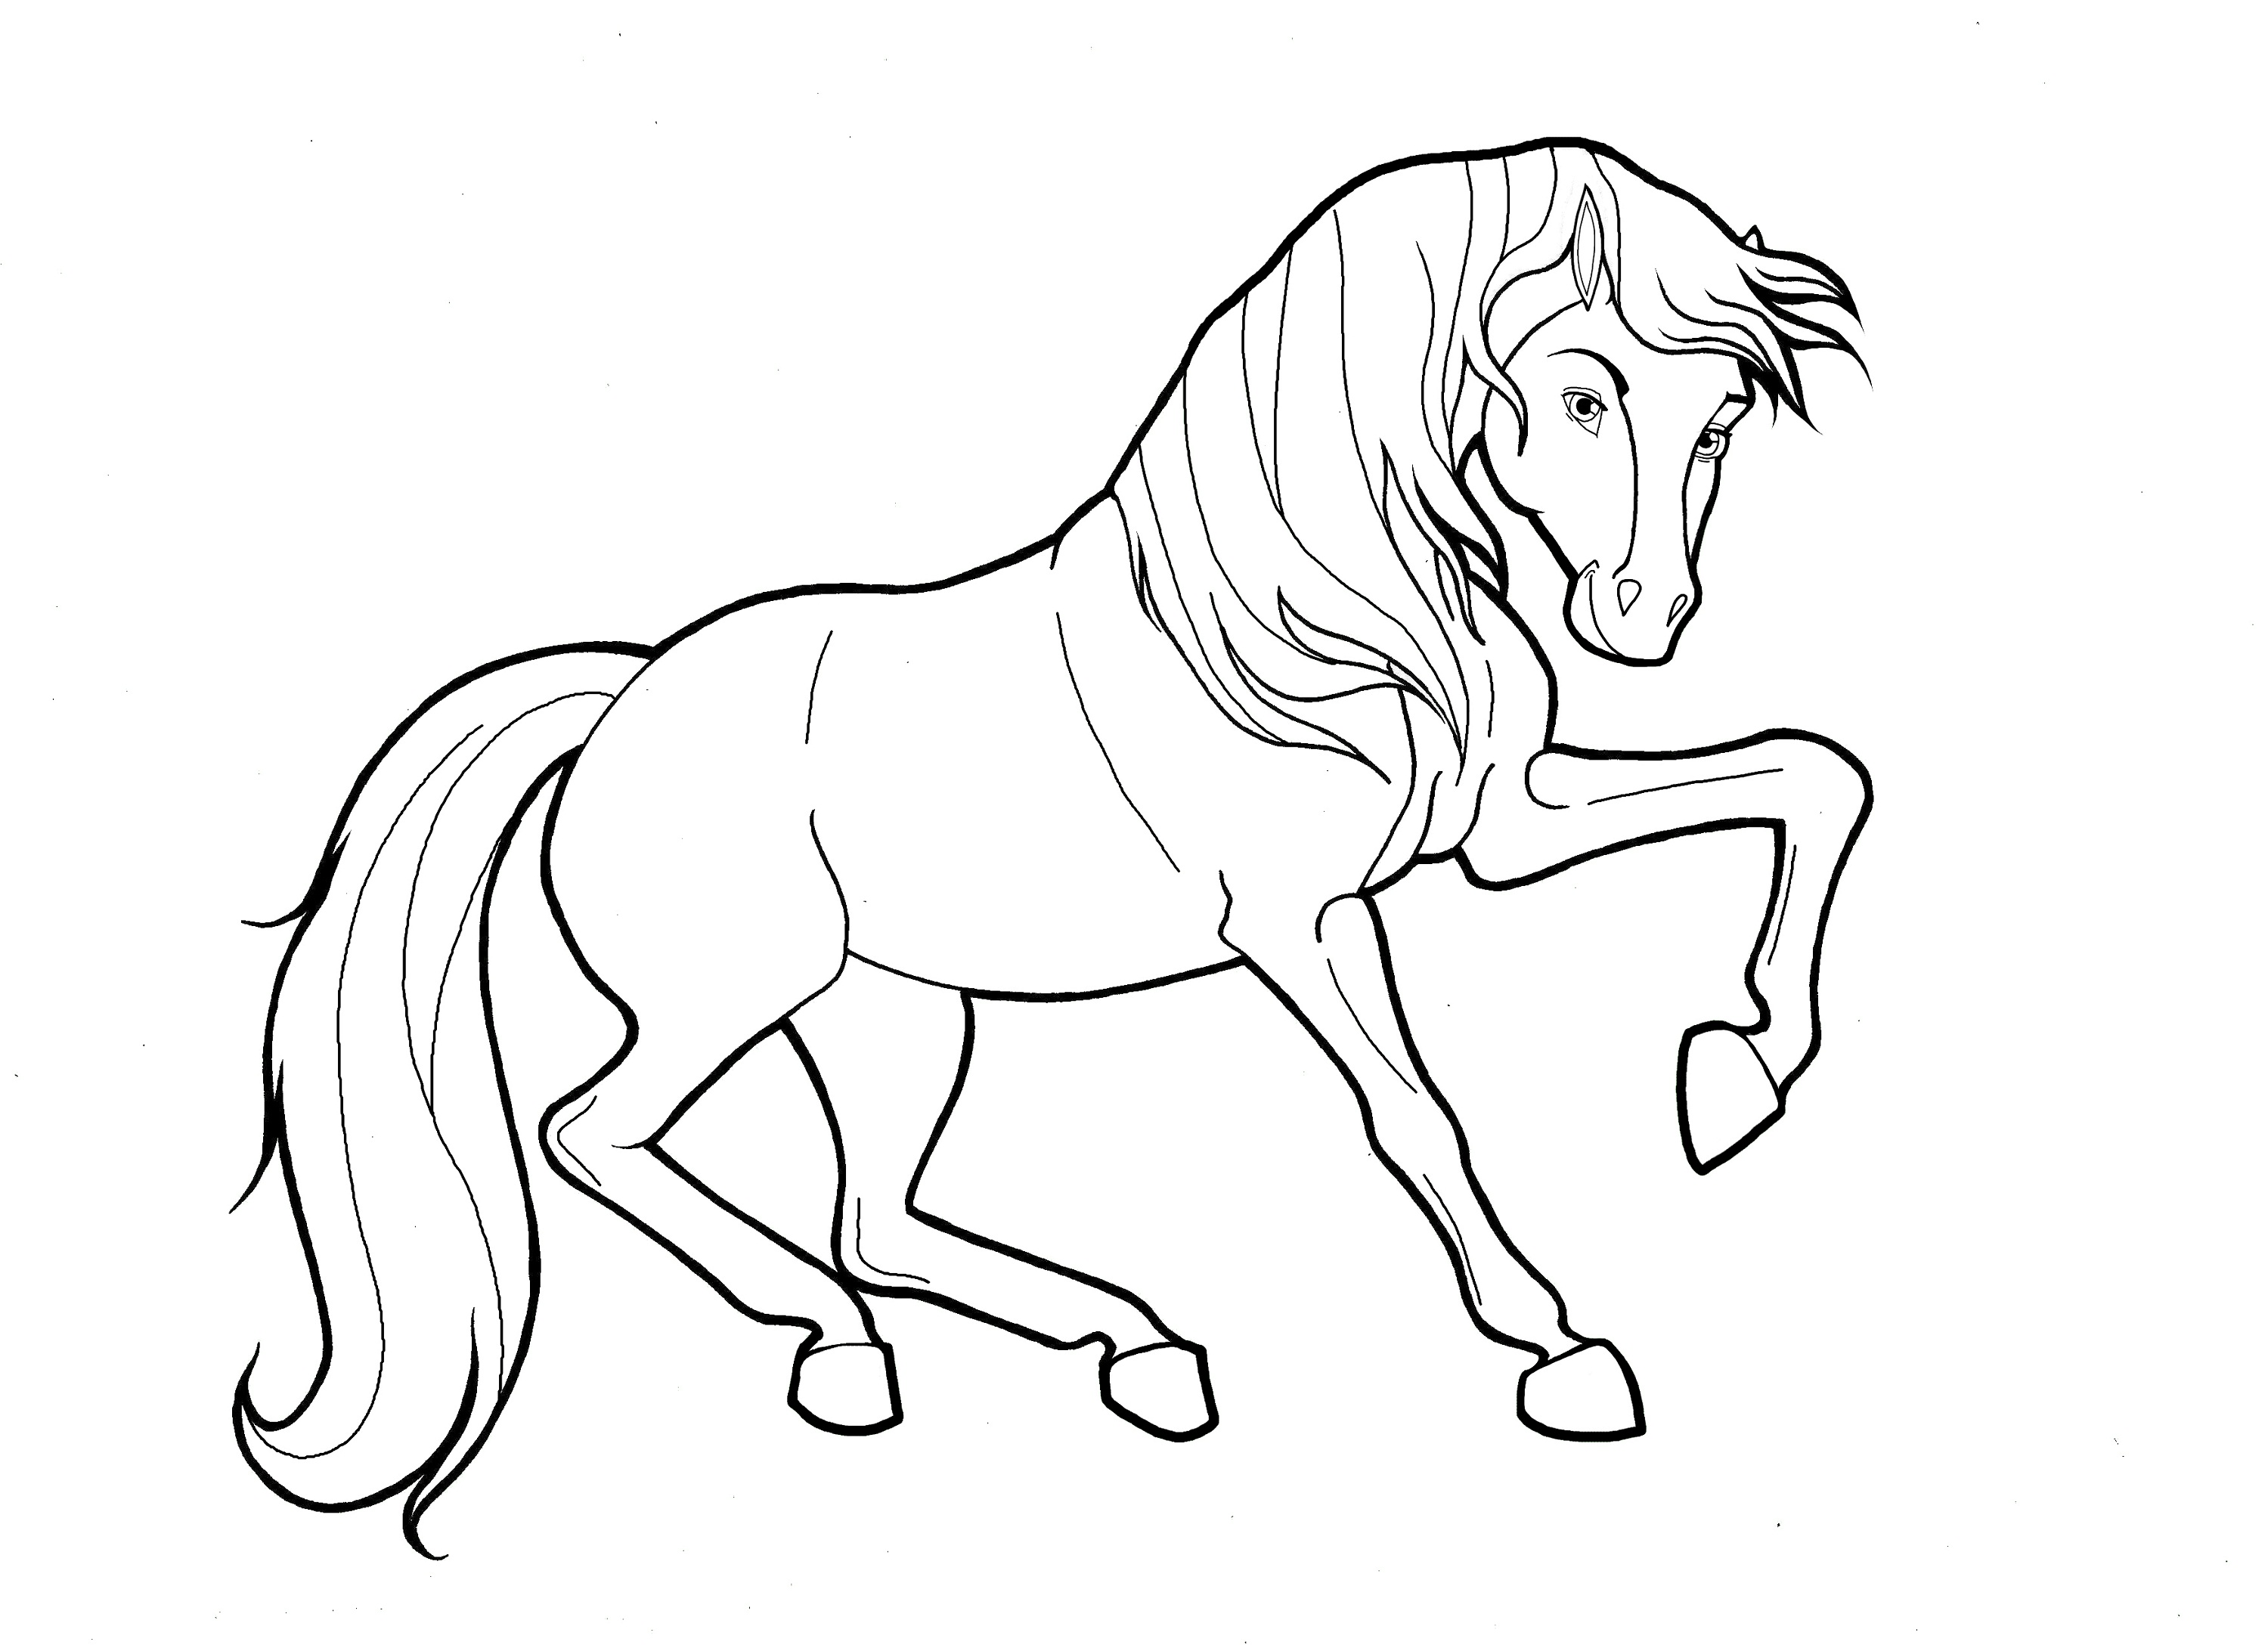 coloring pages horses running - photo #15